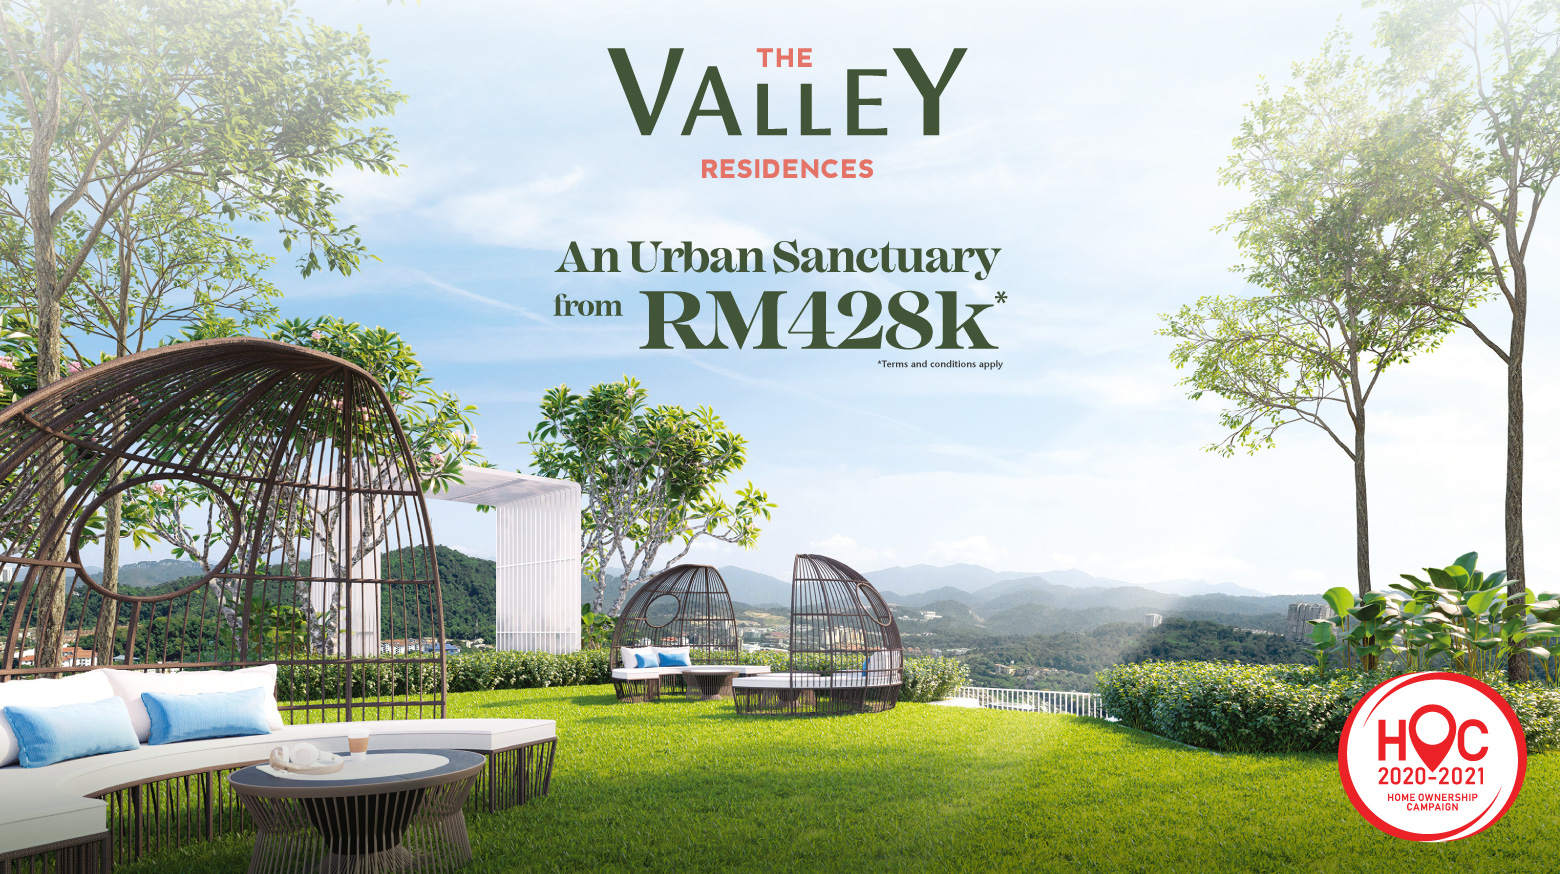 the-valley-residences-an-urban-sanctuary